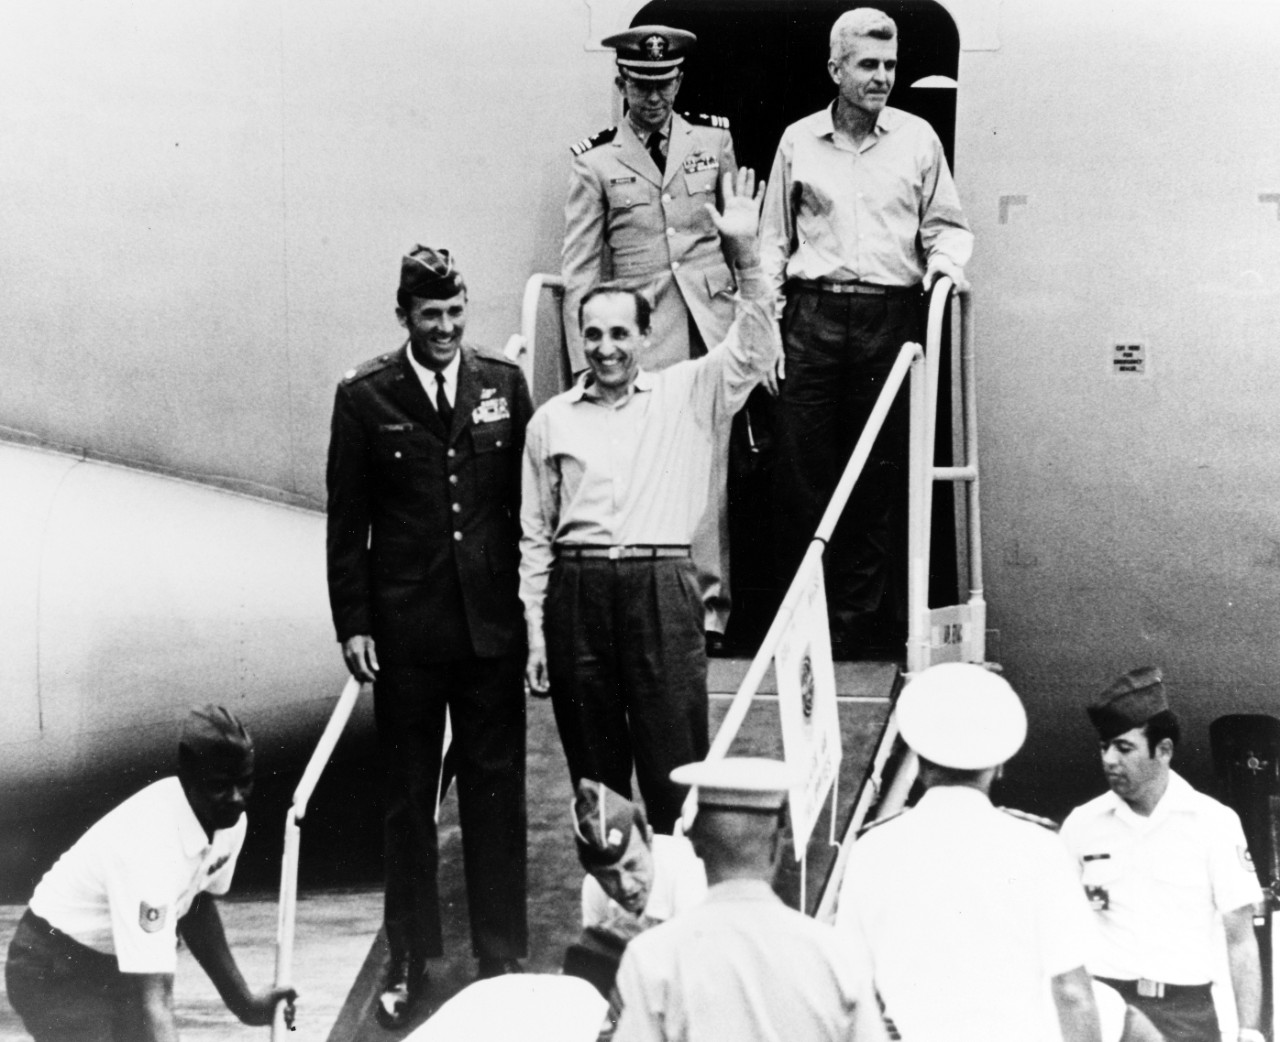 Two of the returned prisoners of war step from the second U.S. Air Force C-141 to leave Hanoi, at Clark Air Force Base, Philippine Islands, in February 1973. They are: Colonel Robinson Risner, USAF (waving), and Captain James Stockdale, USN. Their escorts are Major Leroy W. Thornal, USAF, and Lieutenant Commander Elman J. Parrie, USN.